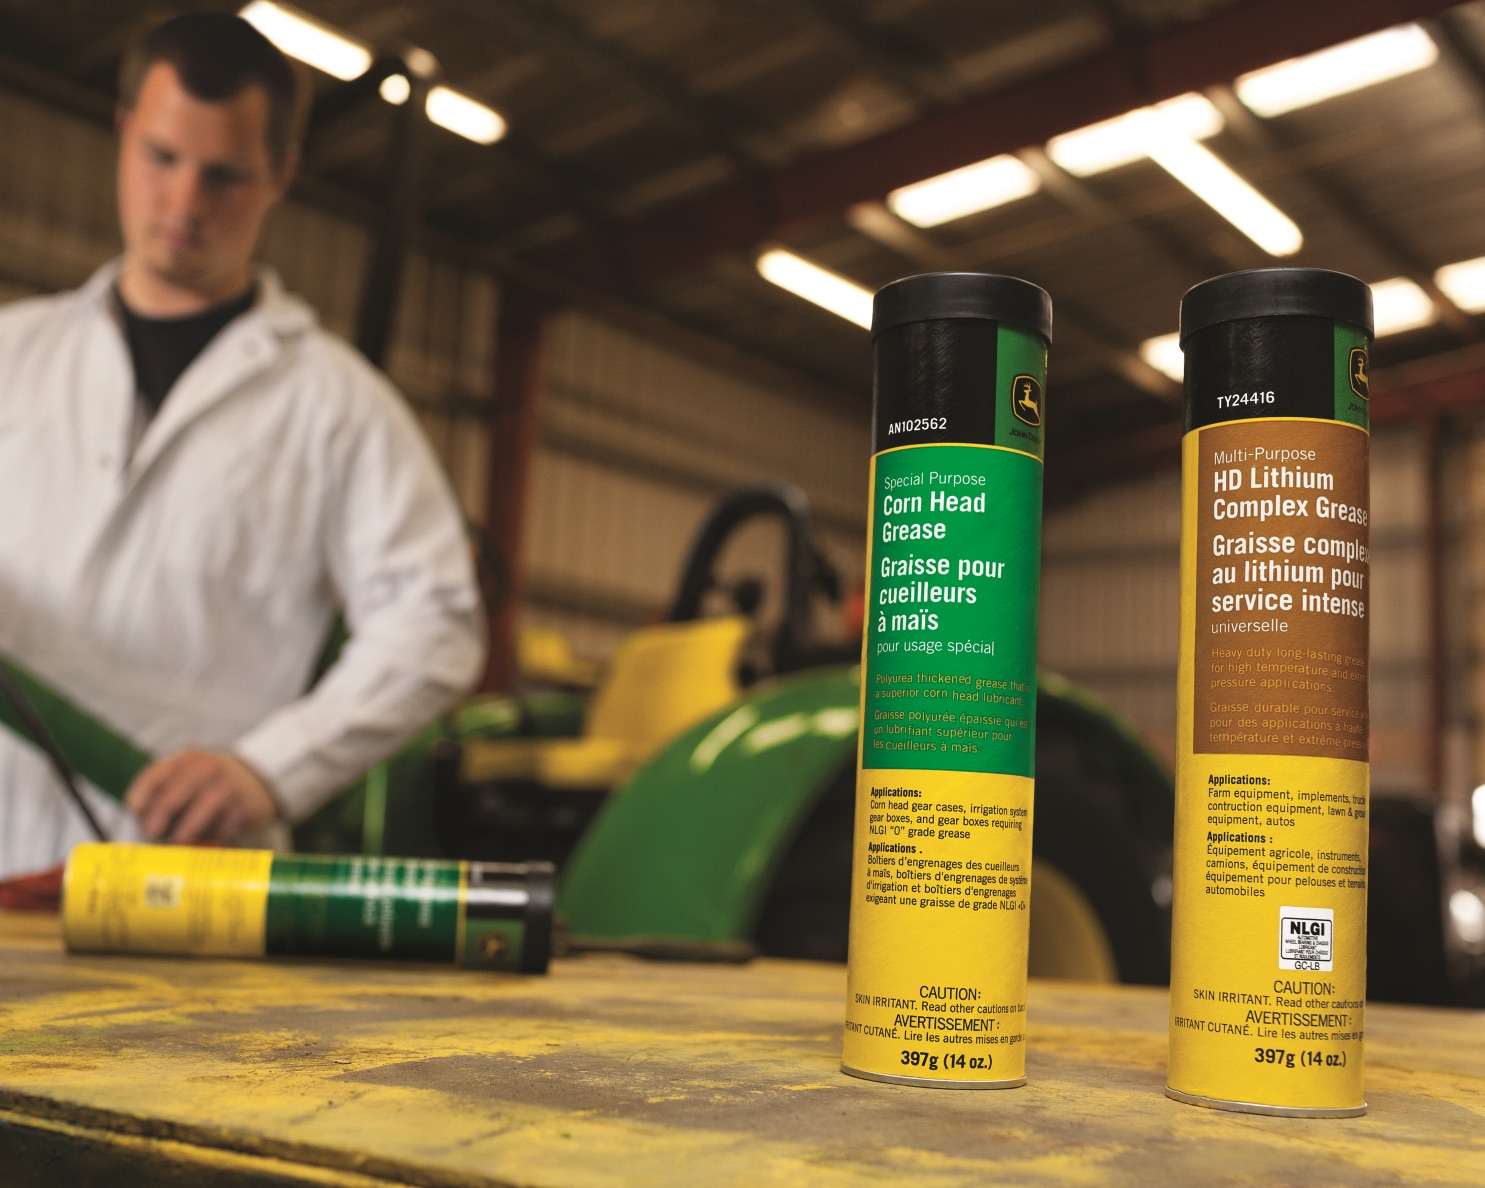 Book service for your John Deere tractor or mower at Tri County in MI